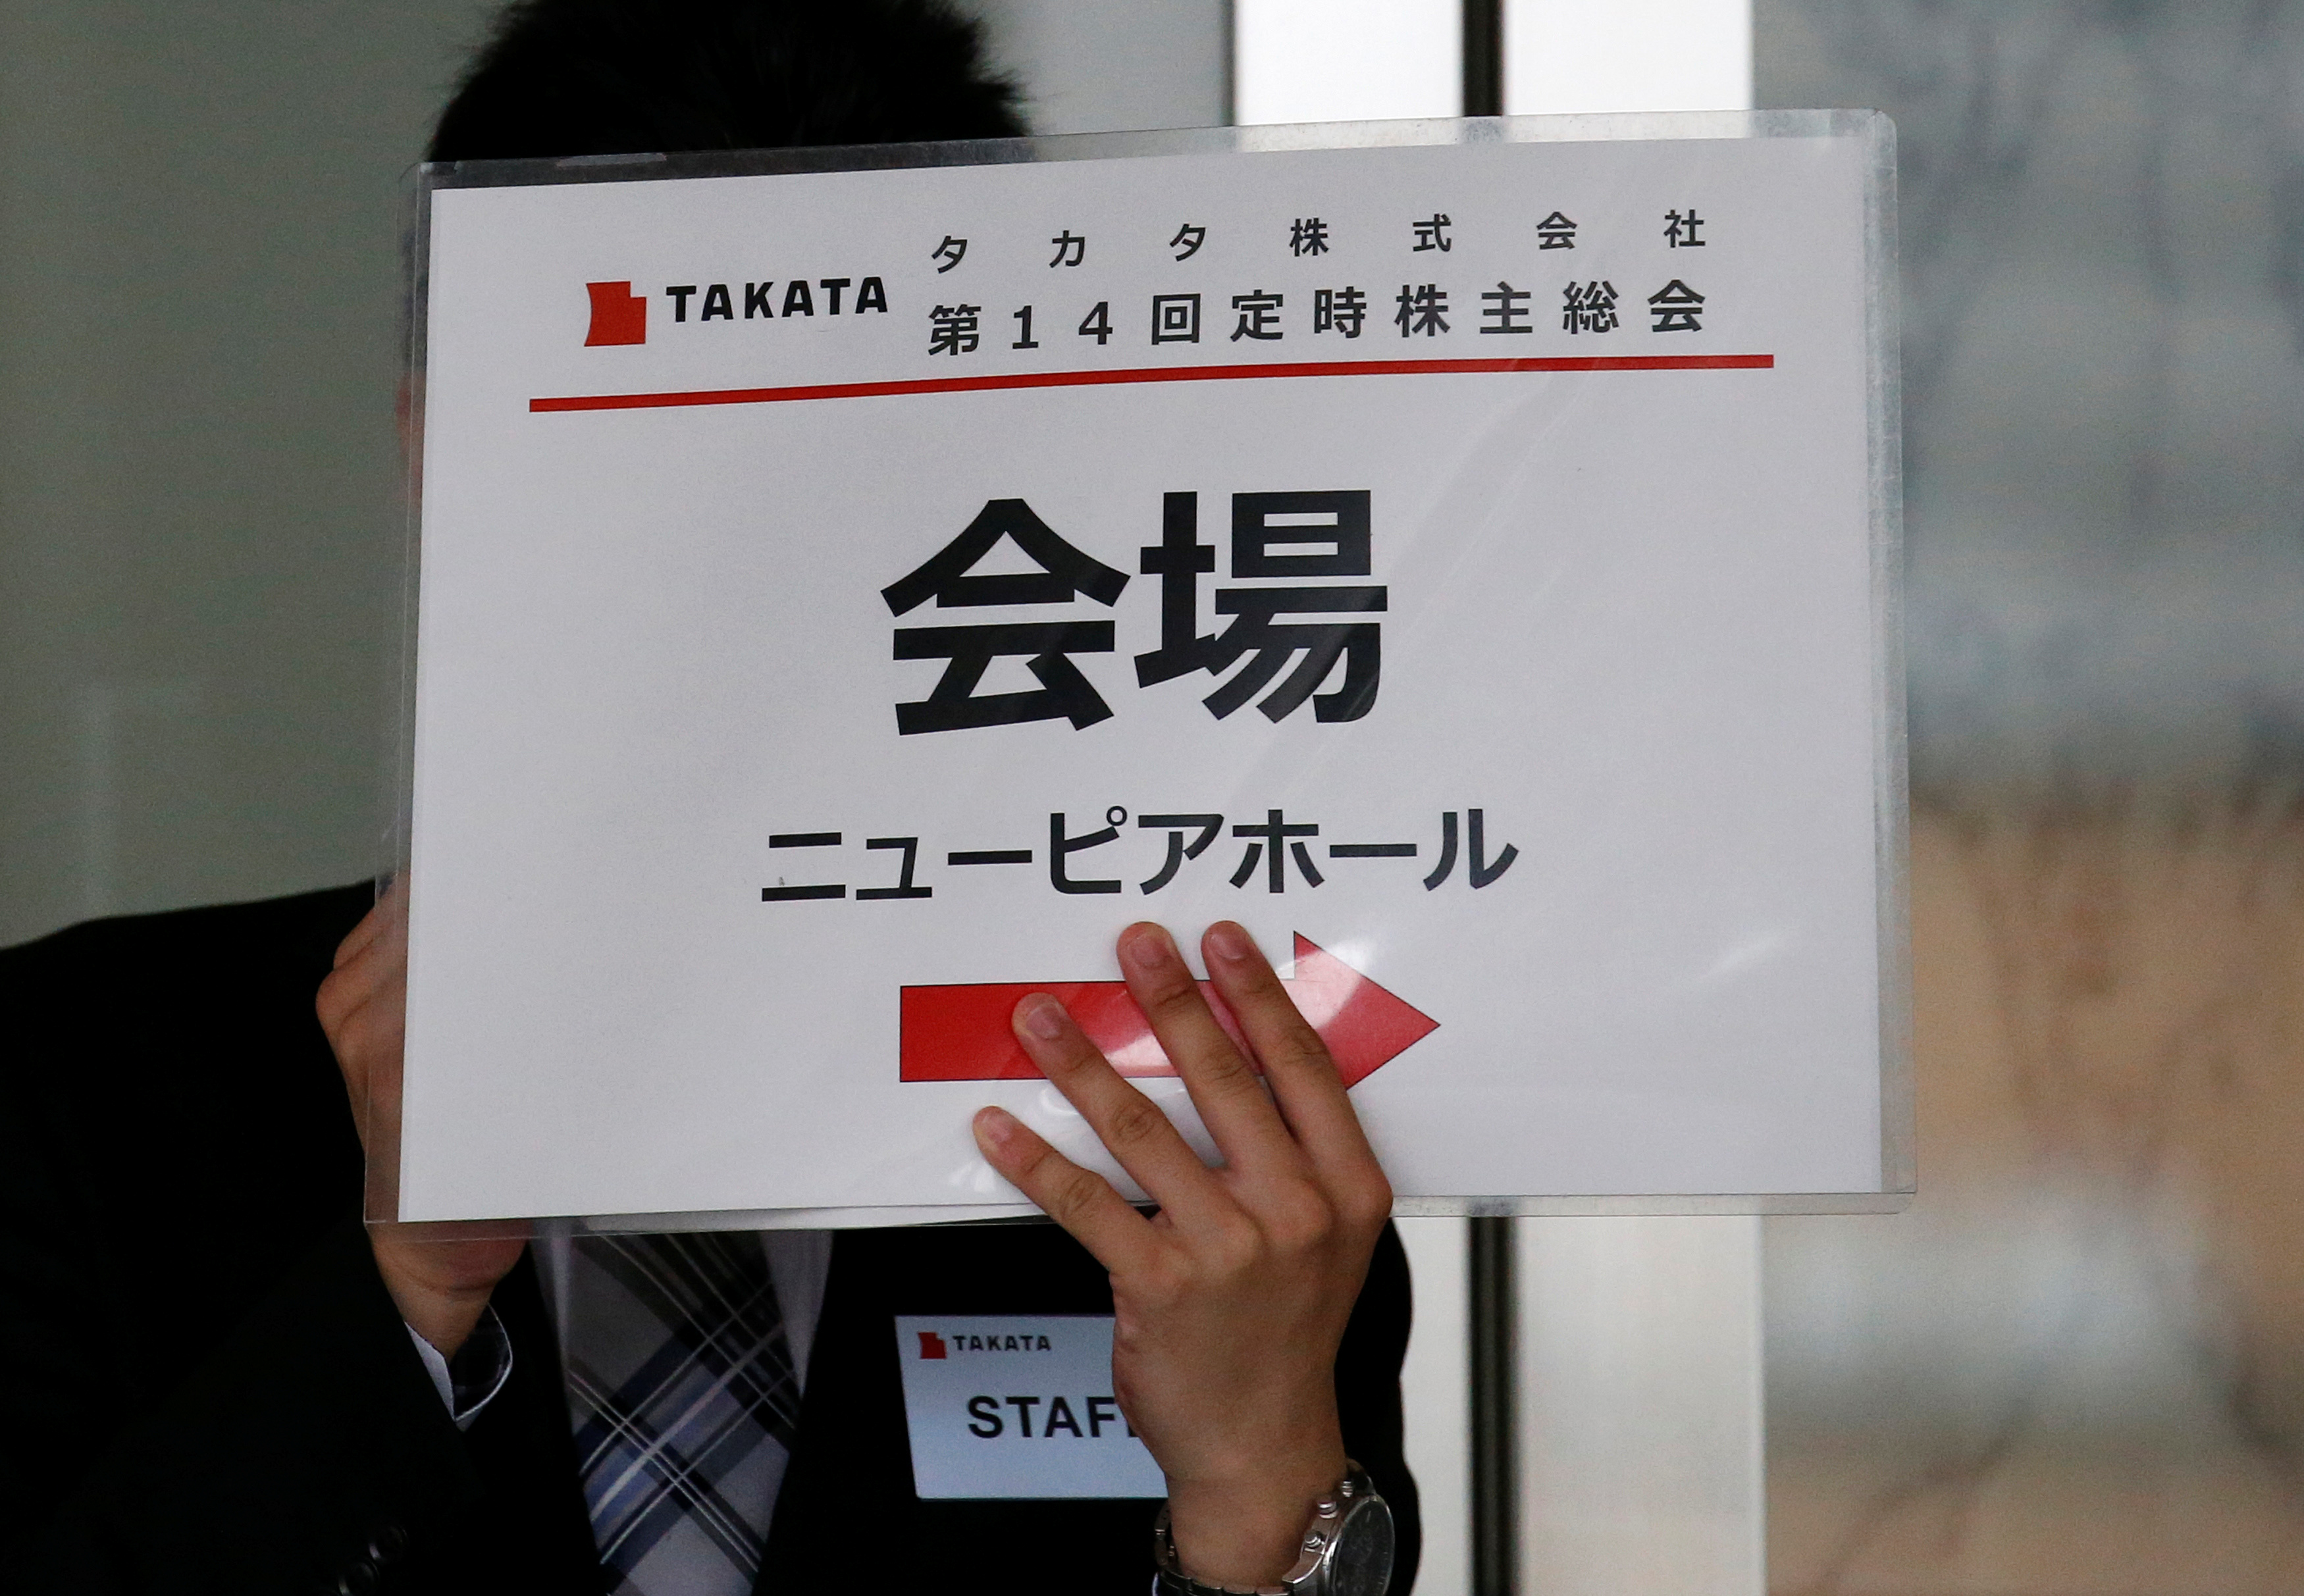 A staff member of Japanese auto parts maker Takata Corp. holds a signboard of the company's Annual General Meeting at an entrance of the venue in Tokyo, Japan,  June 27, 2017, following the company's  filing for bankruptcy protection. REUTERS/Issei Kato